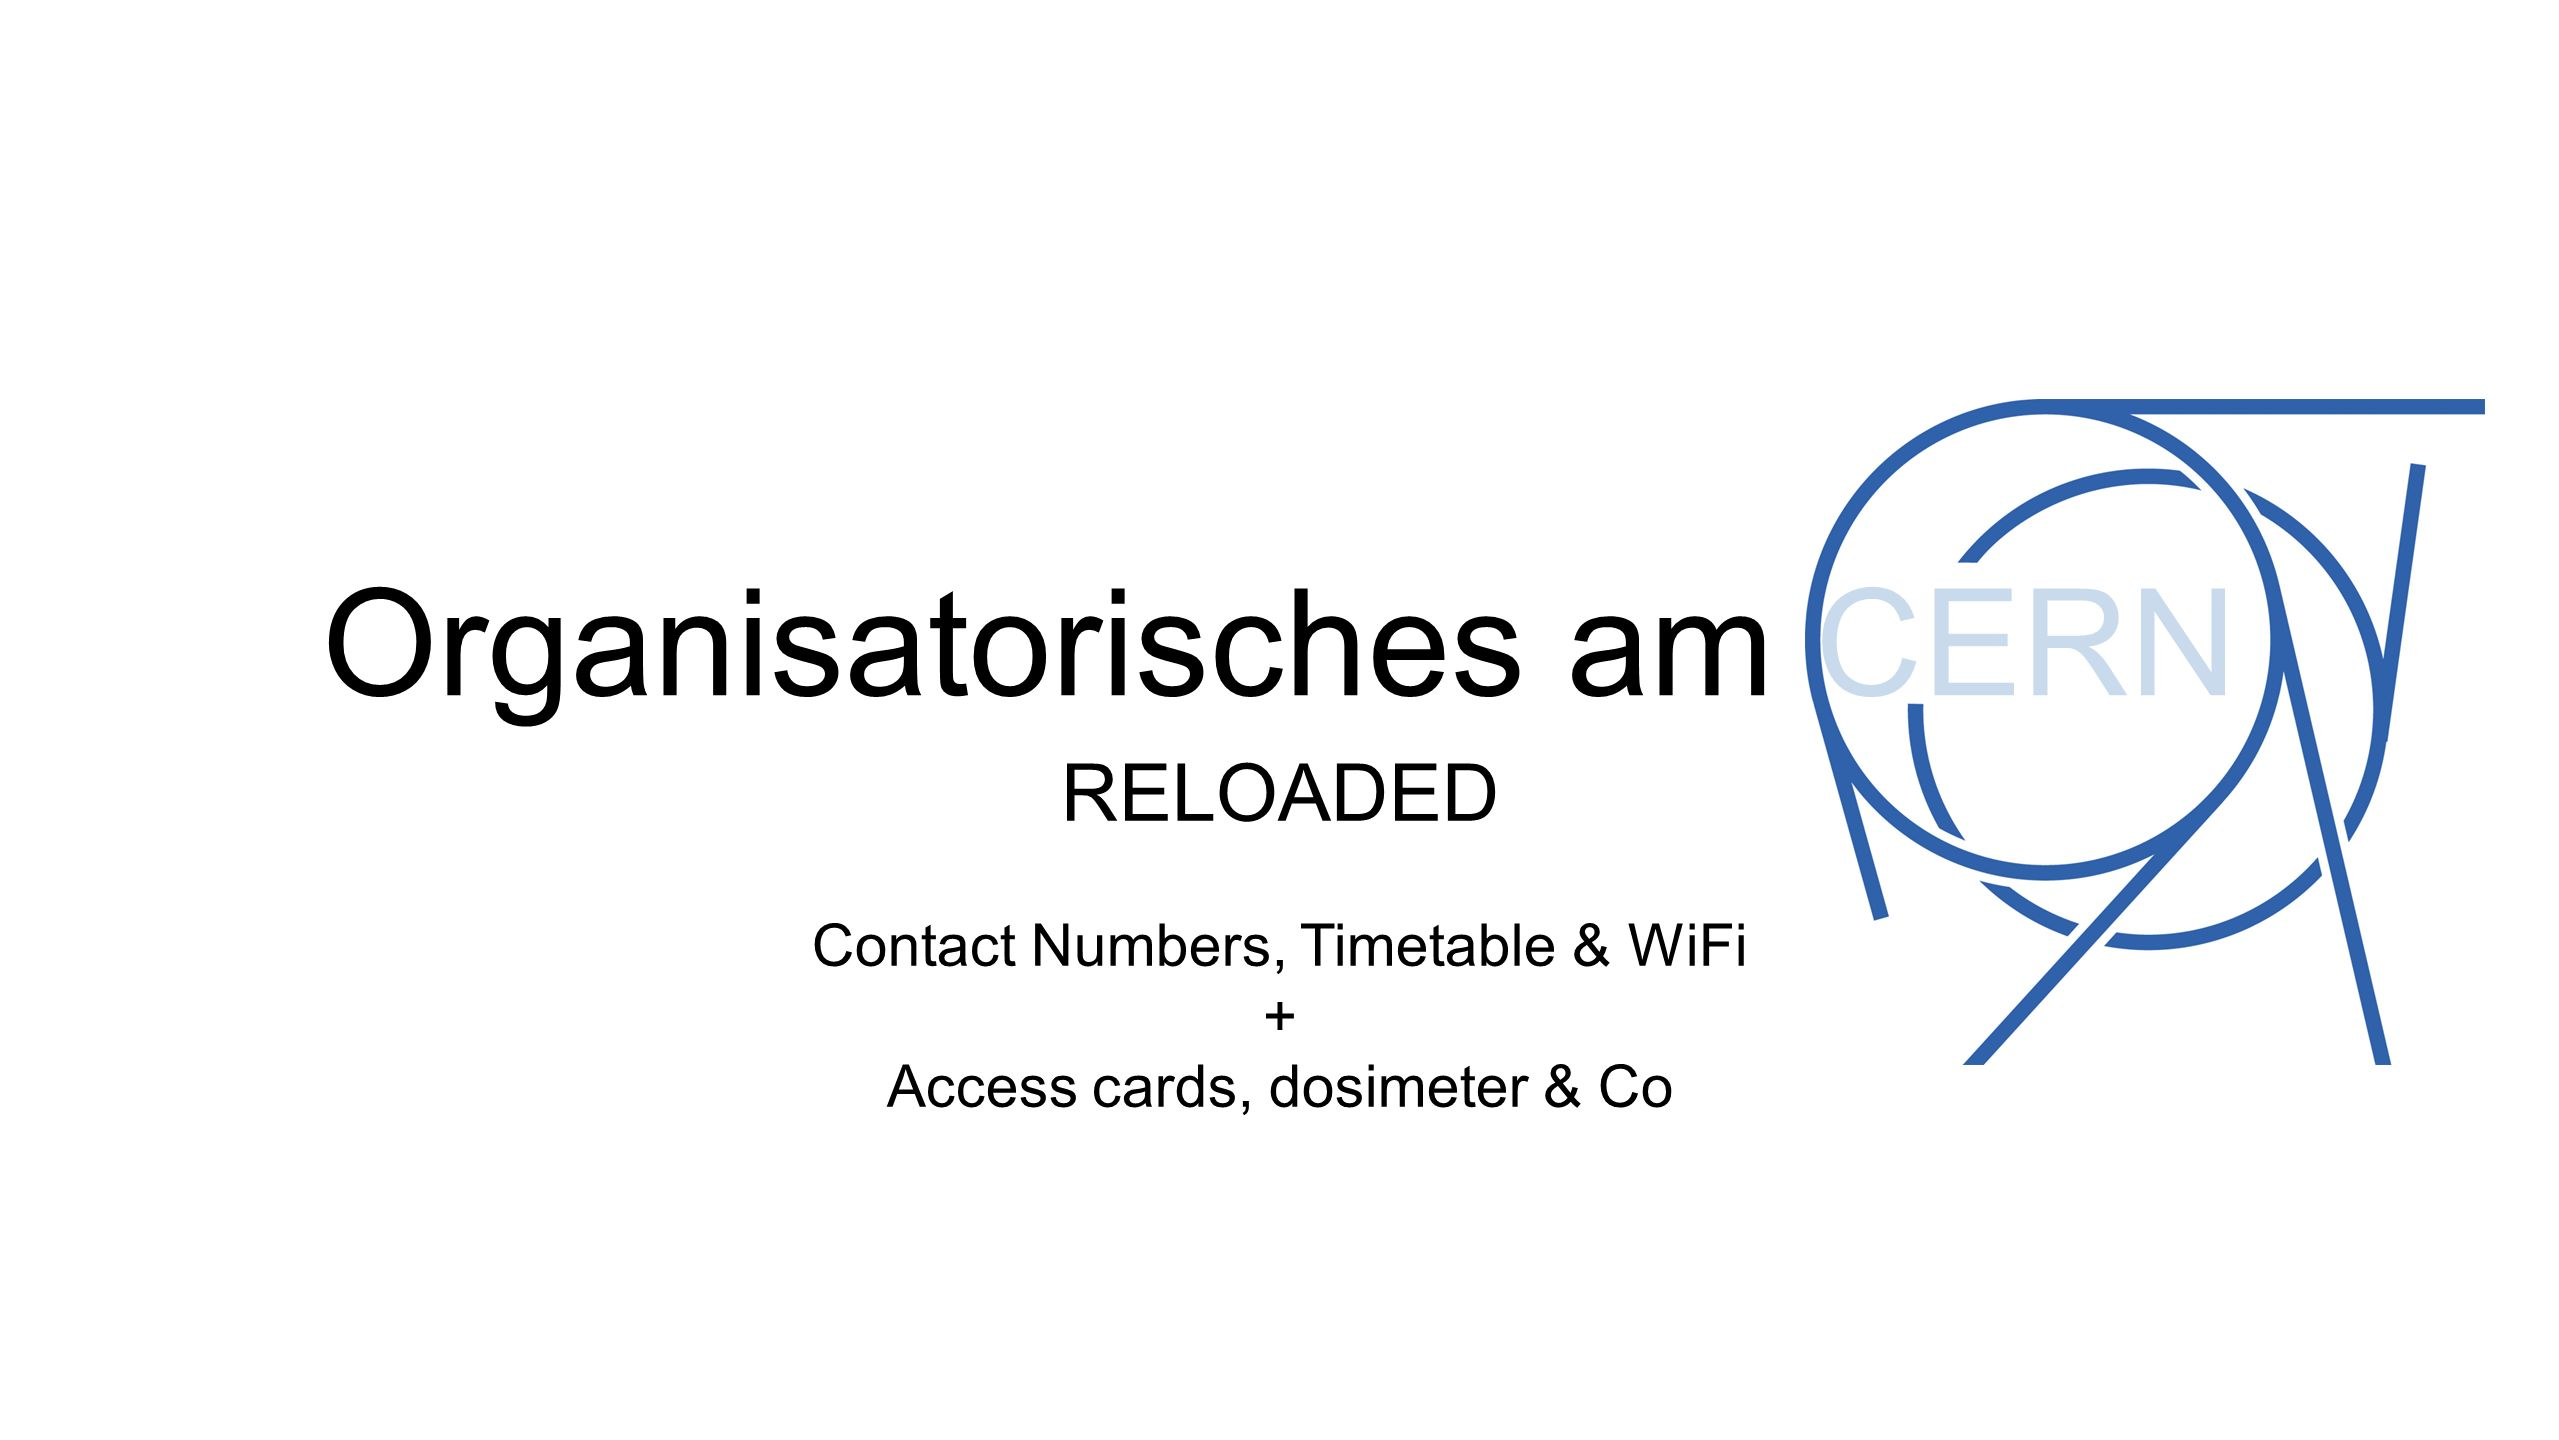 Organisatorisches am CERN RELOADED Contact Numbers, Timetable & WiFi + Access cards, dosimeter & Co